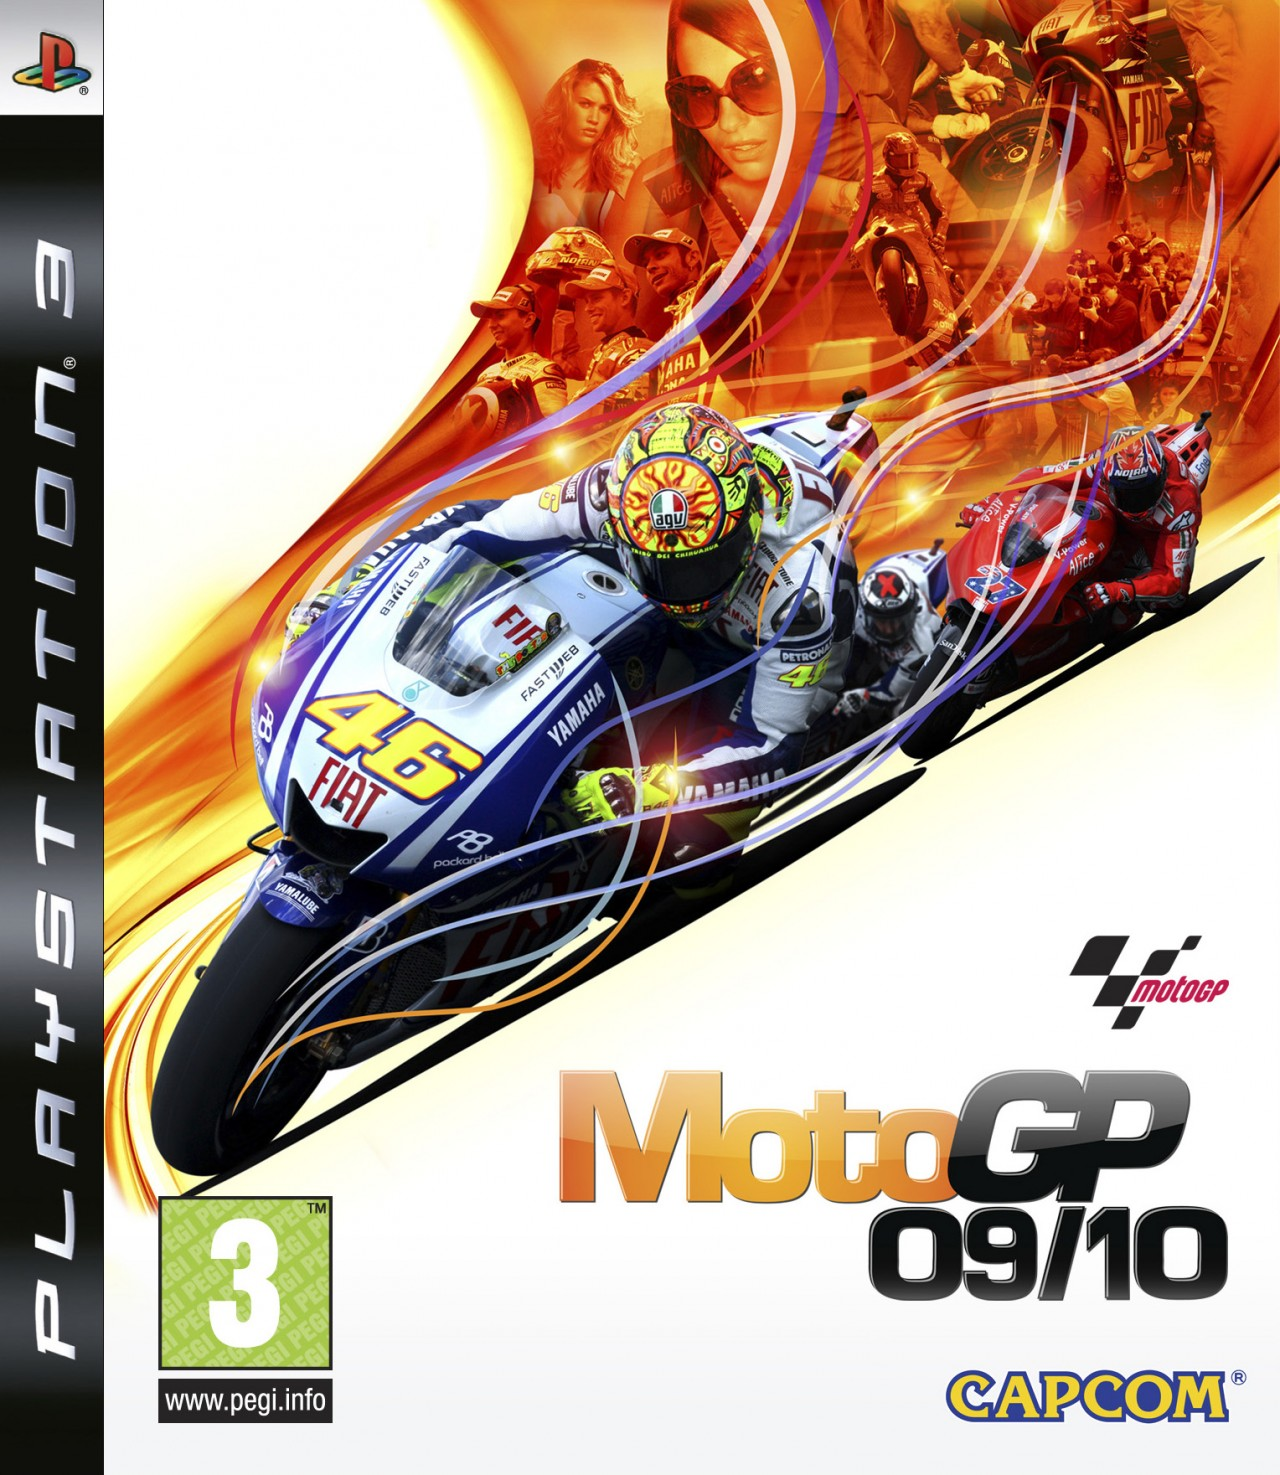 Moto GP 09 10 PS3 y Xbox 360  Ultimagame d95d5b3a967b5